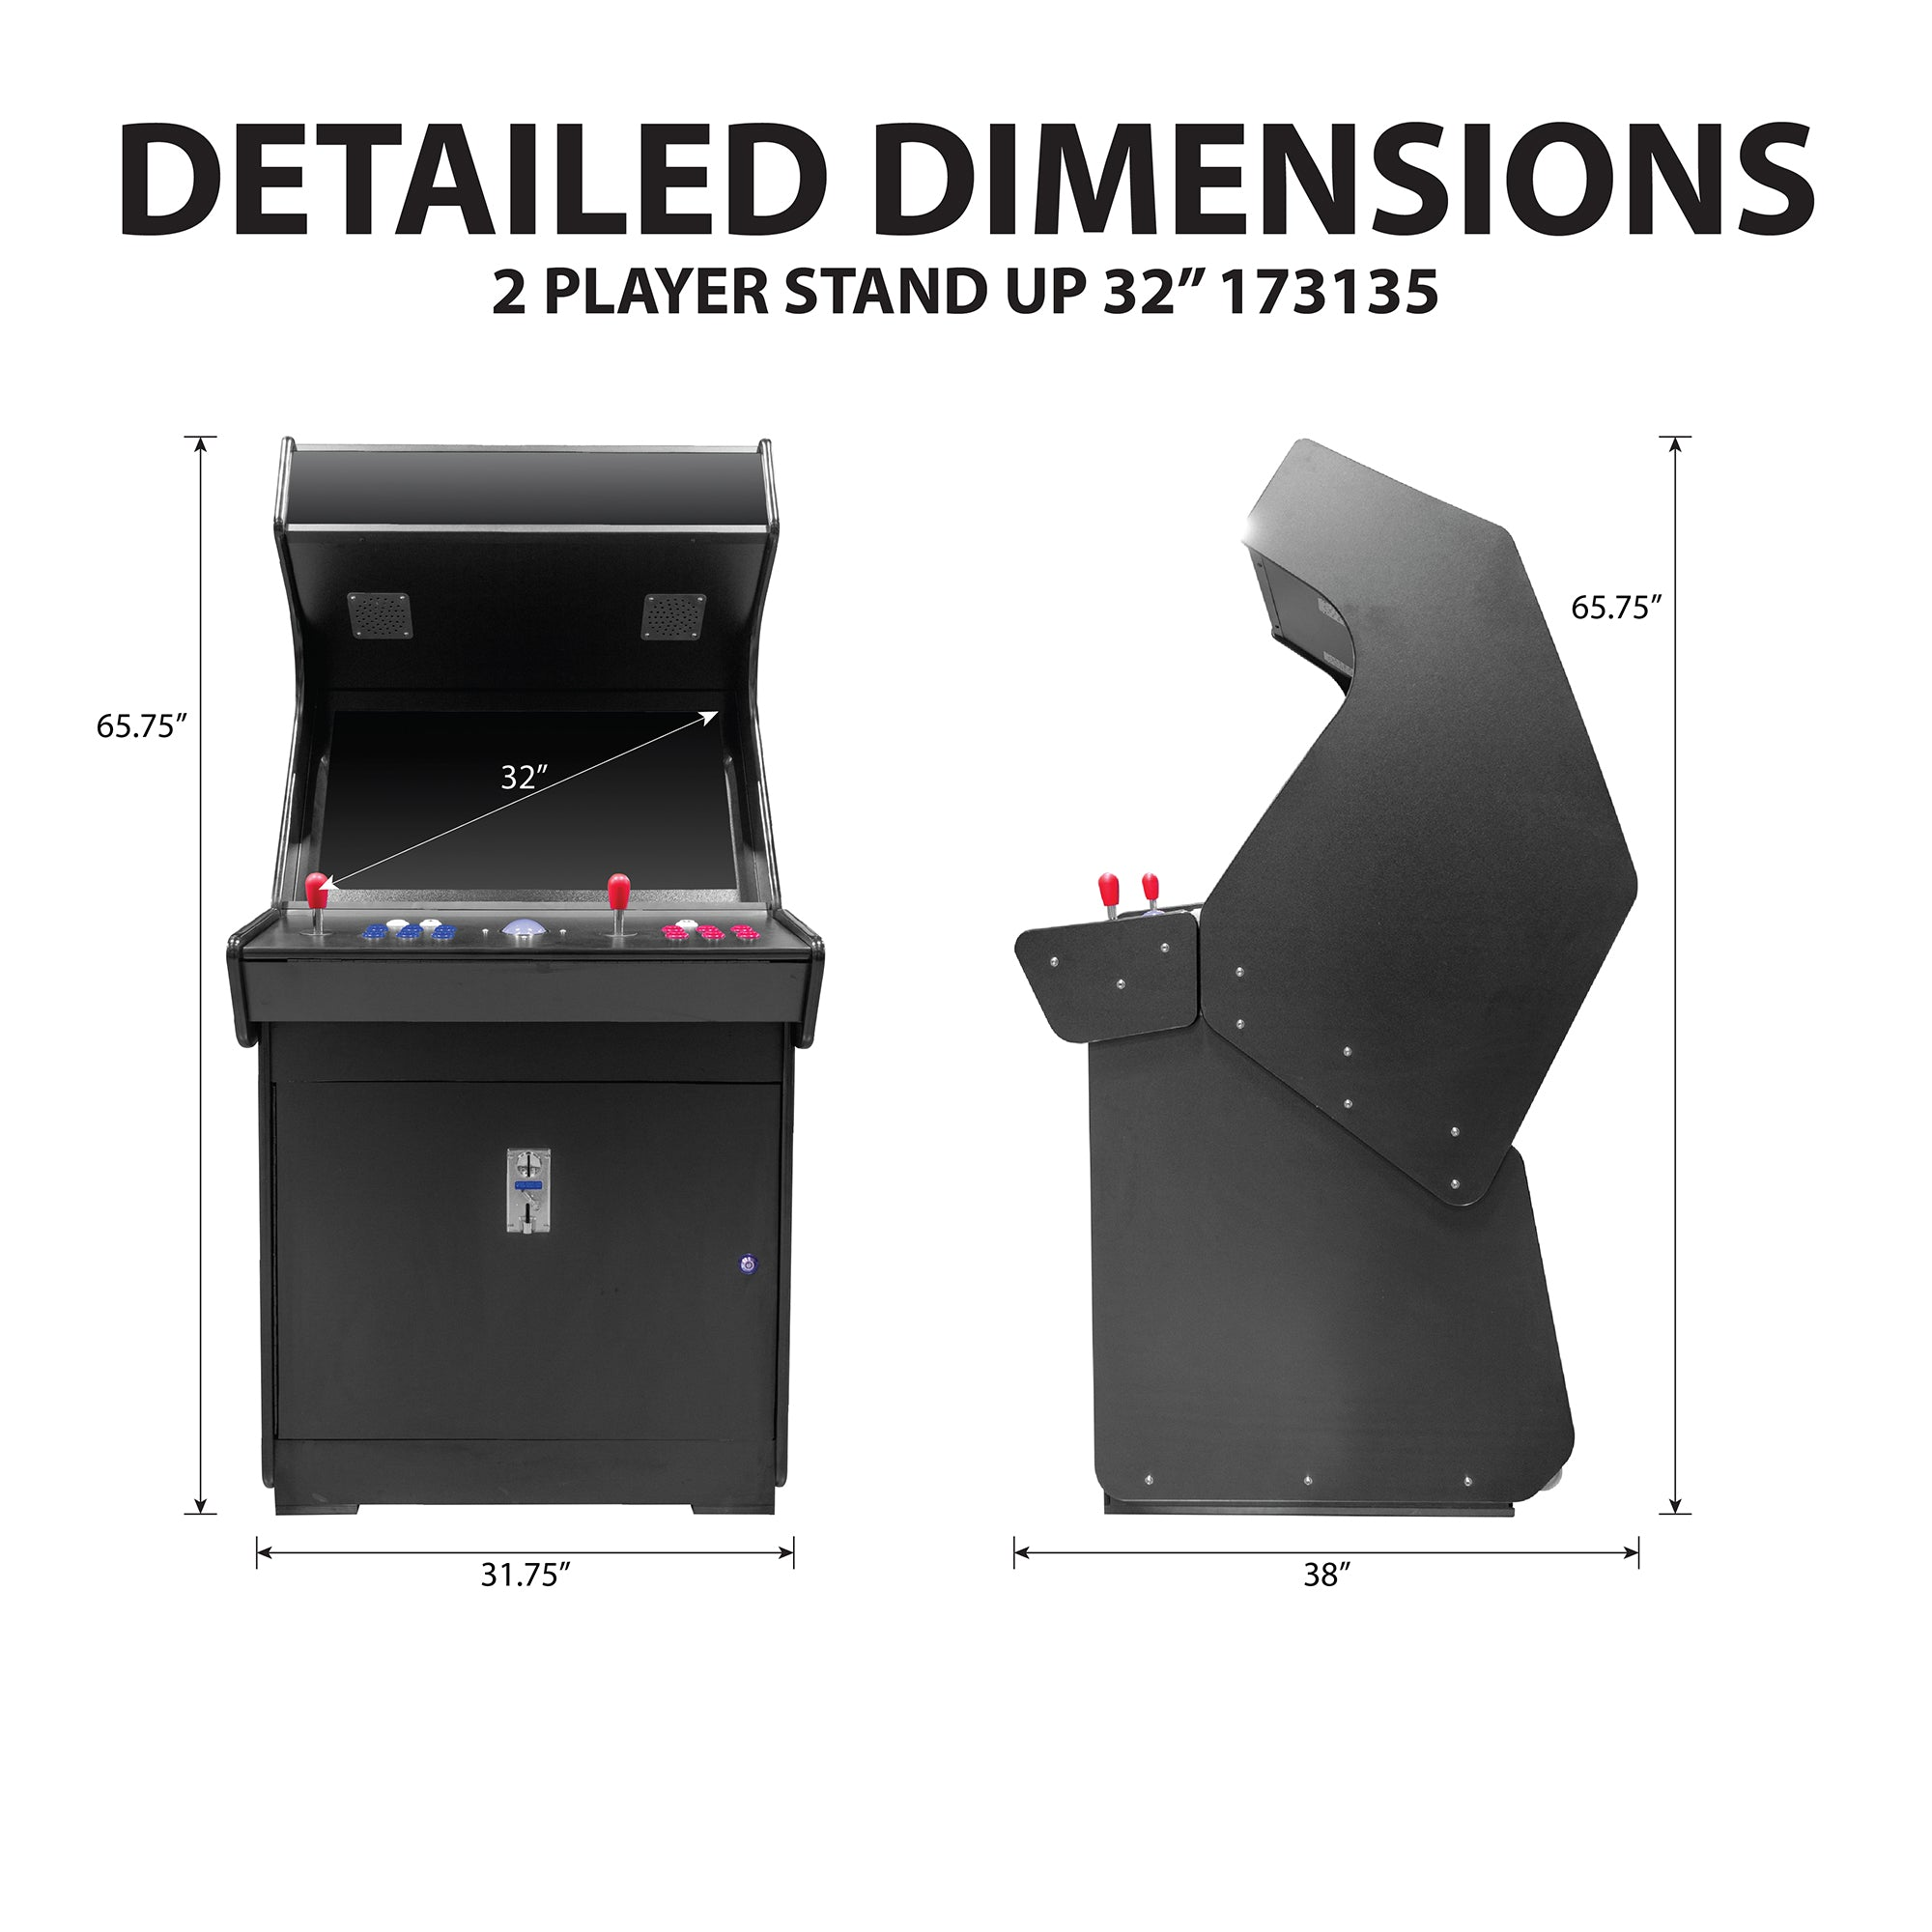 "2 Player Stand Up FULL SIZE 32"" 3500 Classic Video Game Arcade Dimensions"